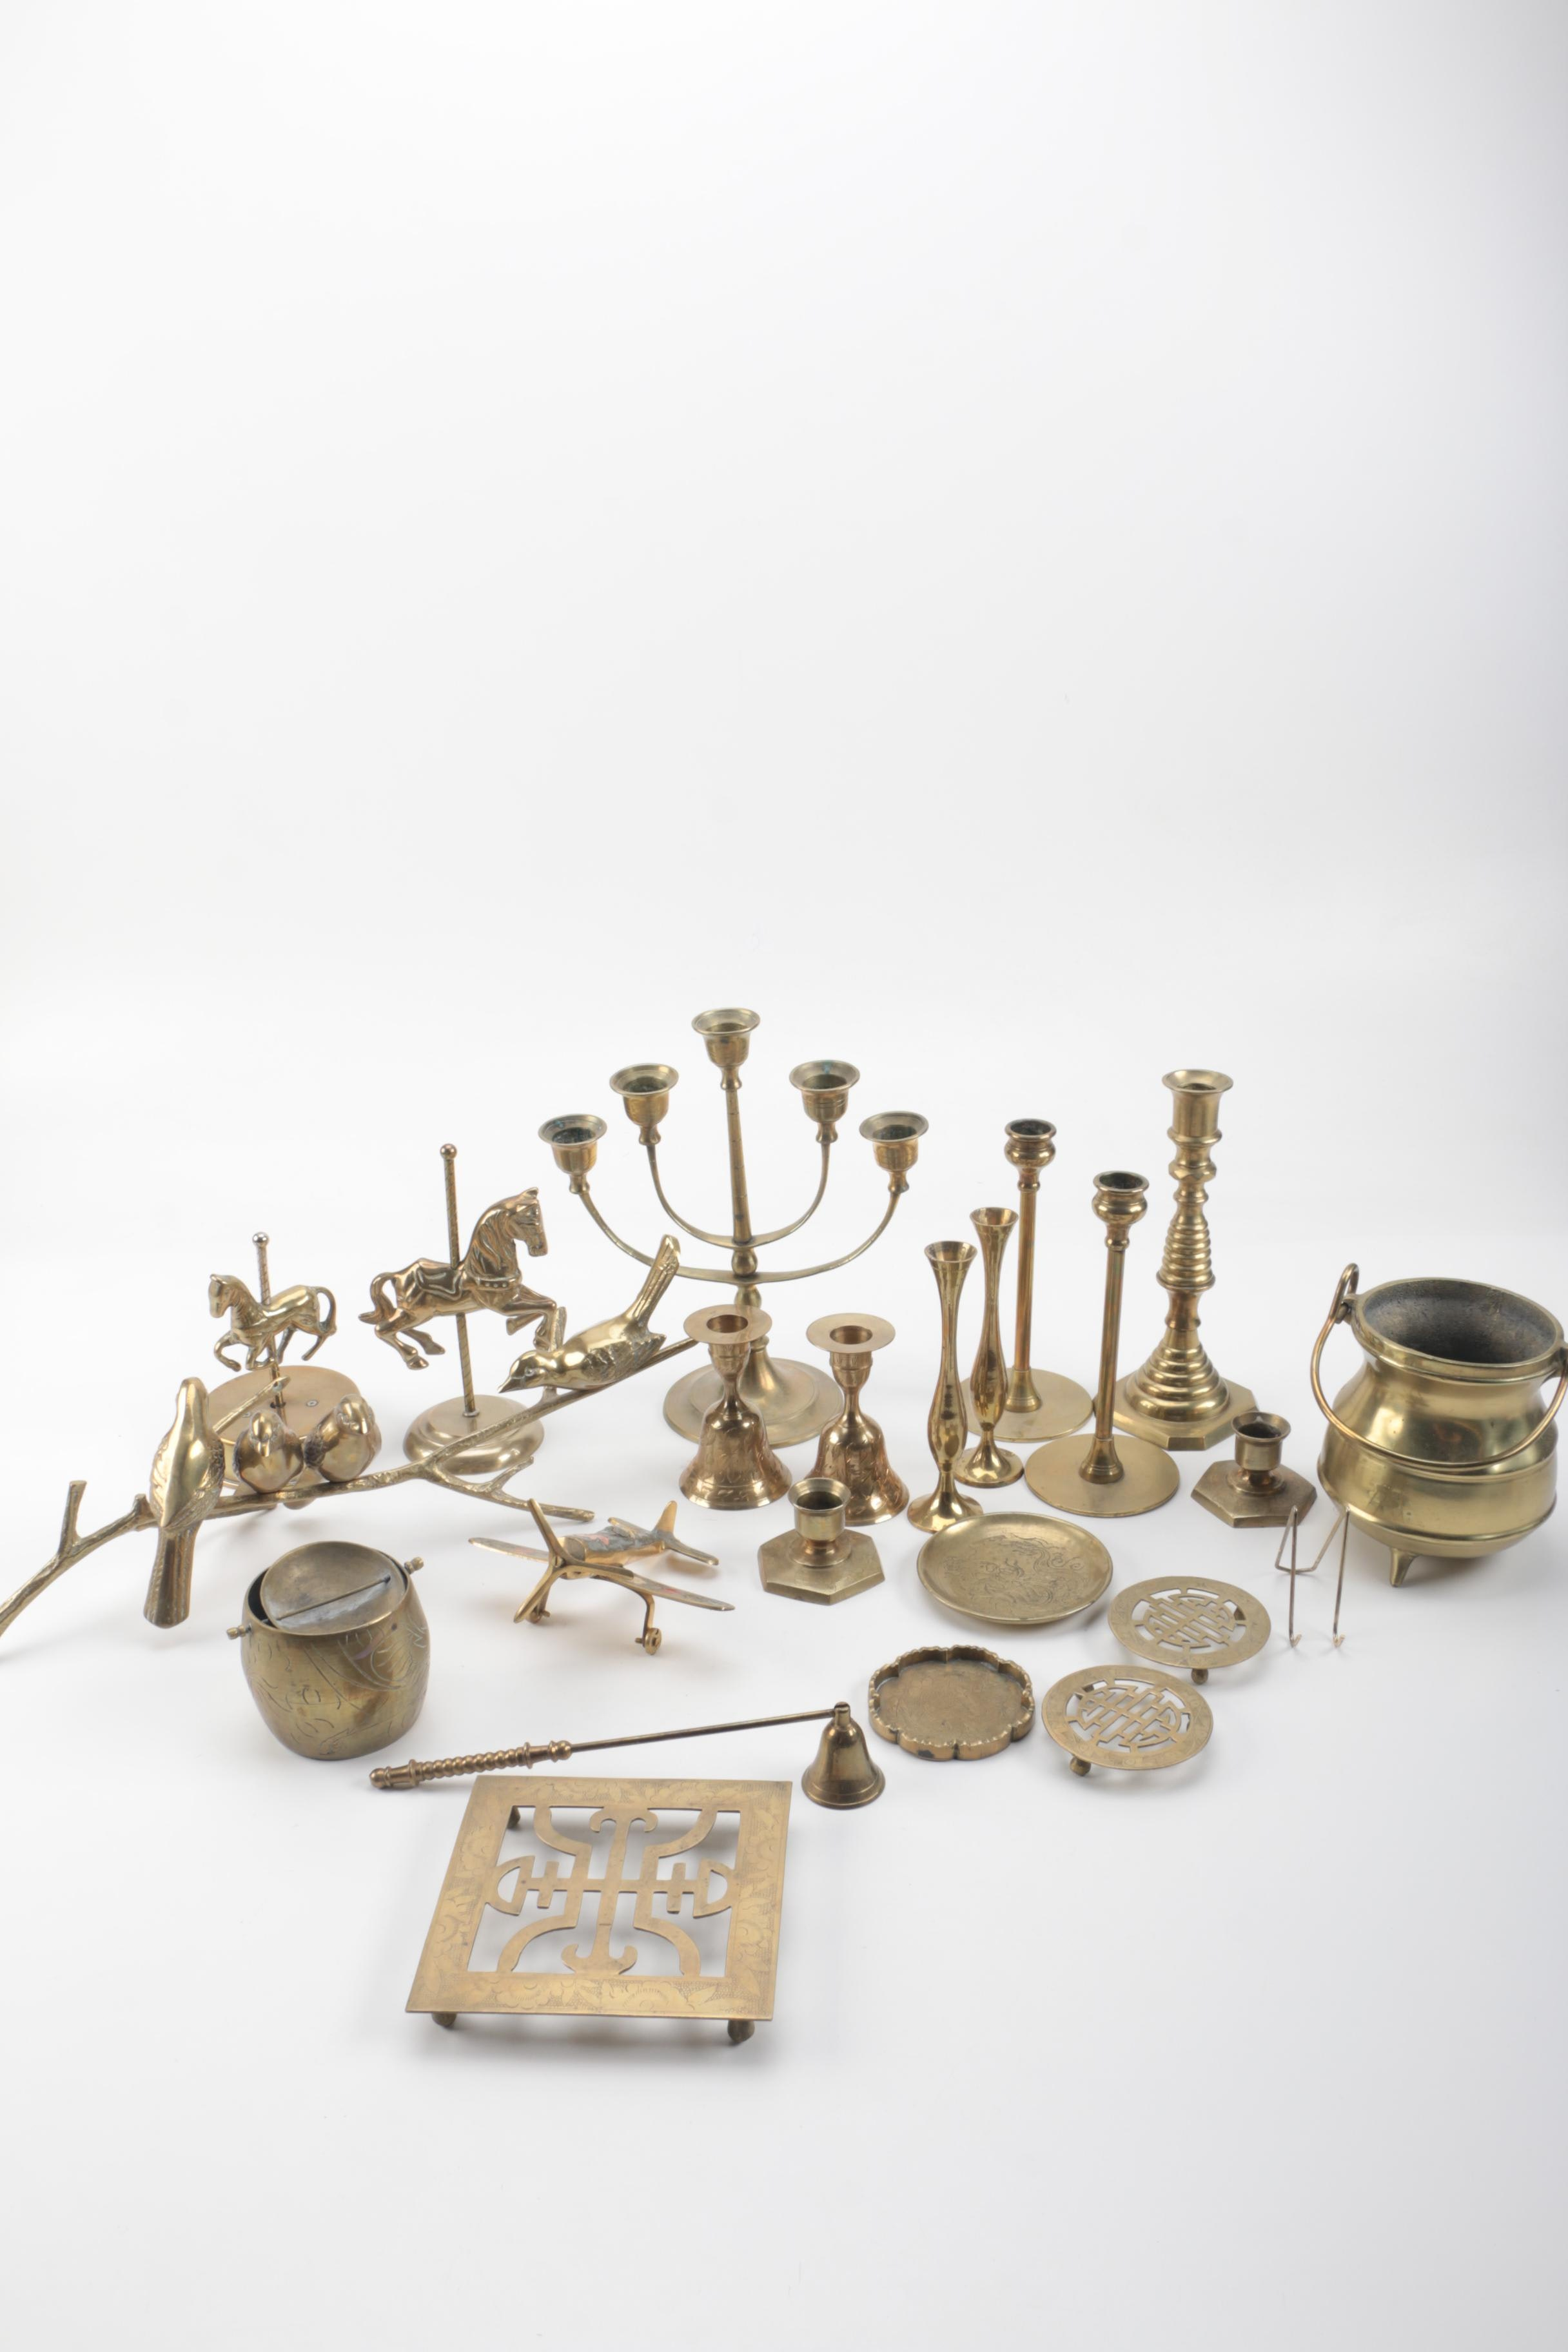 Brass Candles and Figural Decorations